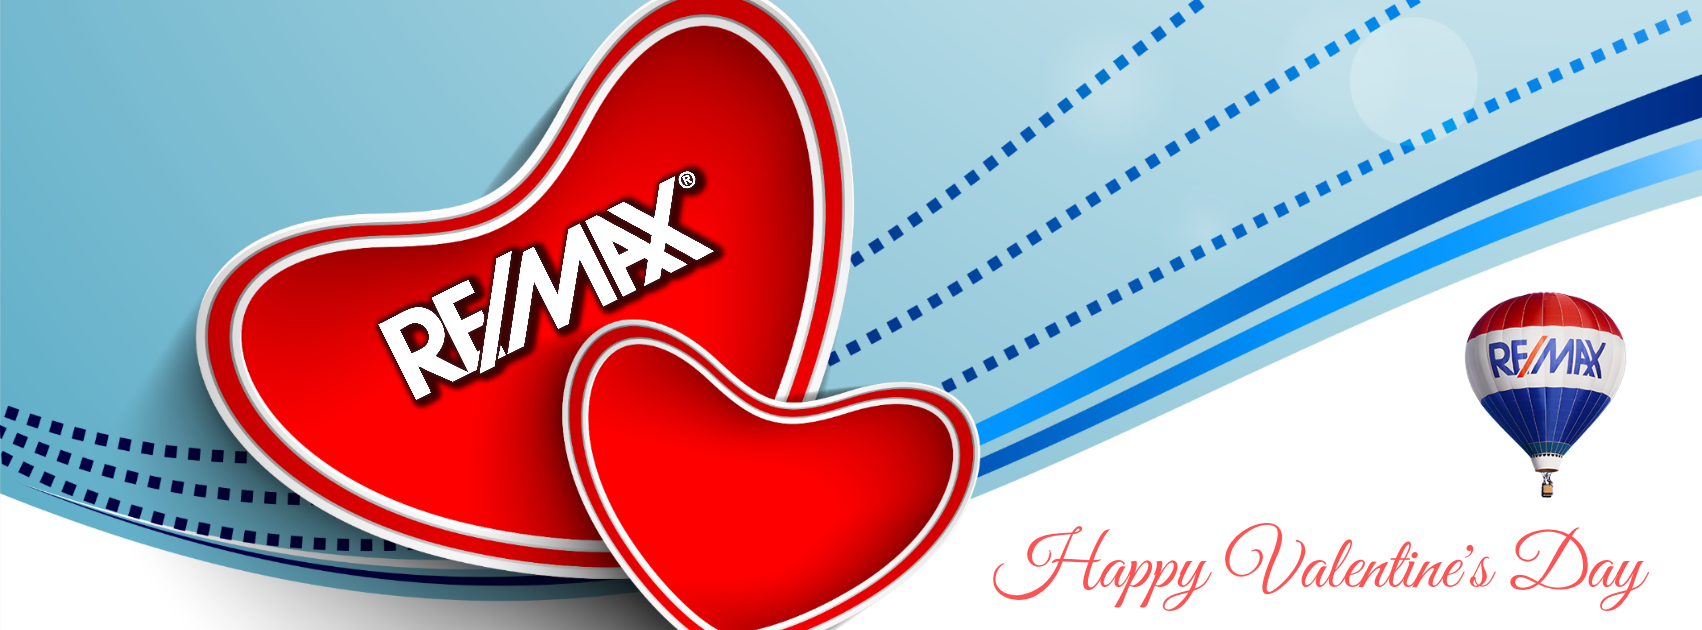 Re max clip art royalty free library Facebook Covers Archives - RE/MAX Elite royalty free library